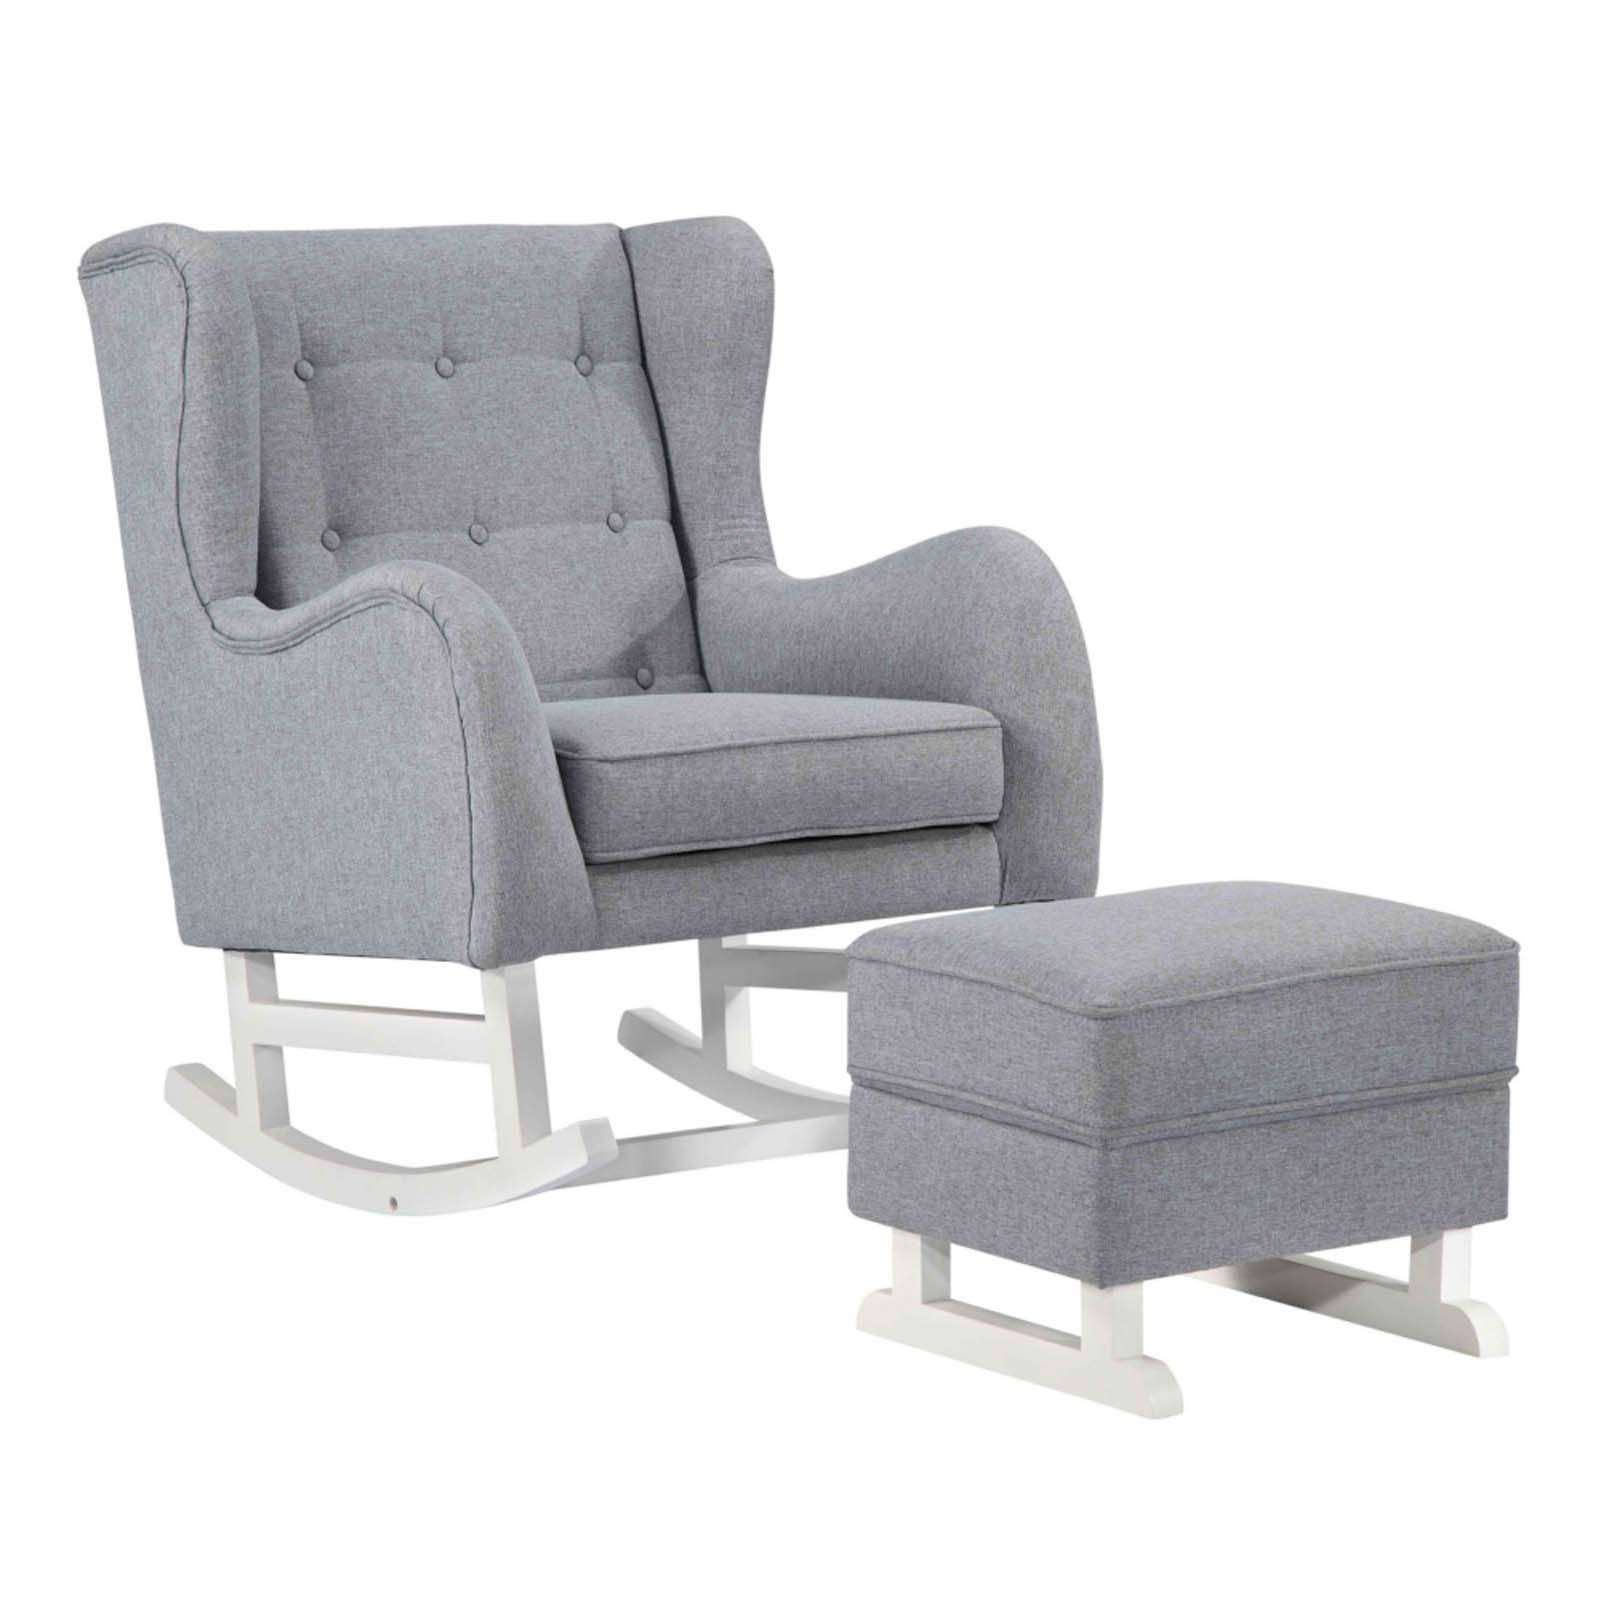 Baby Polyester Lounge Chair Gray